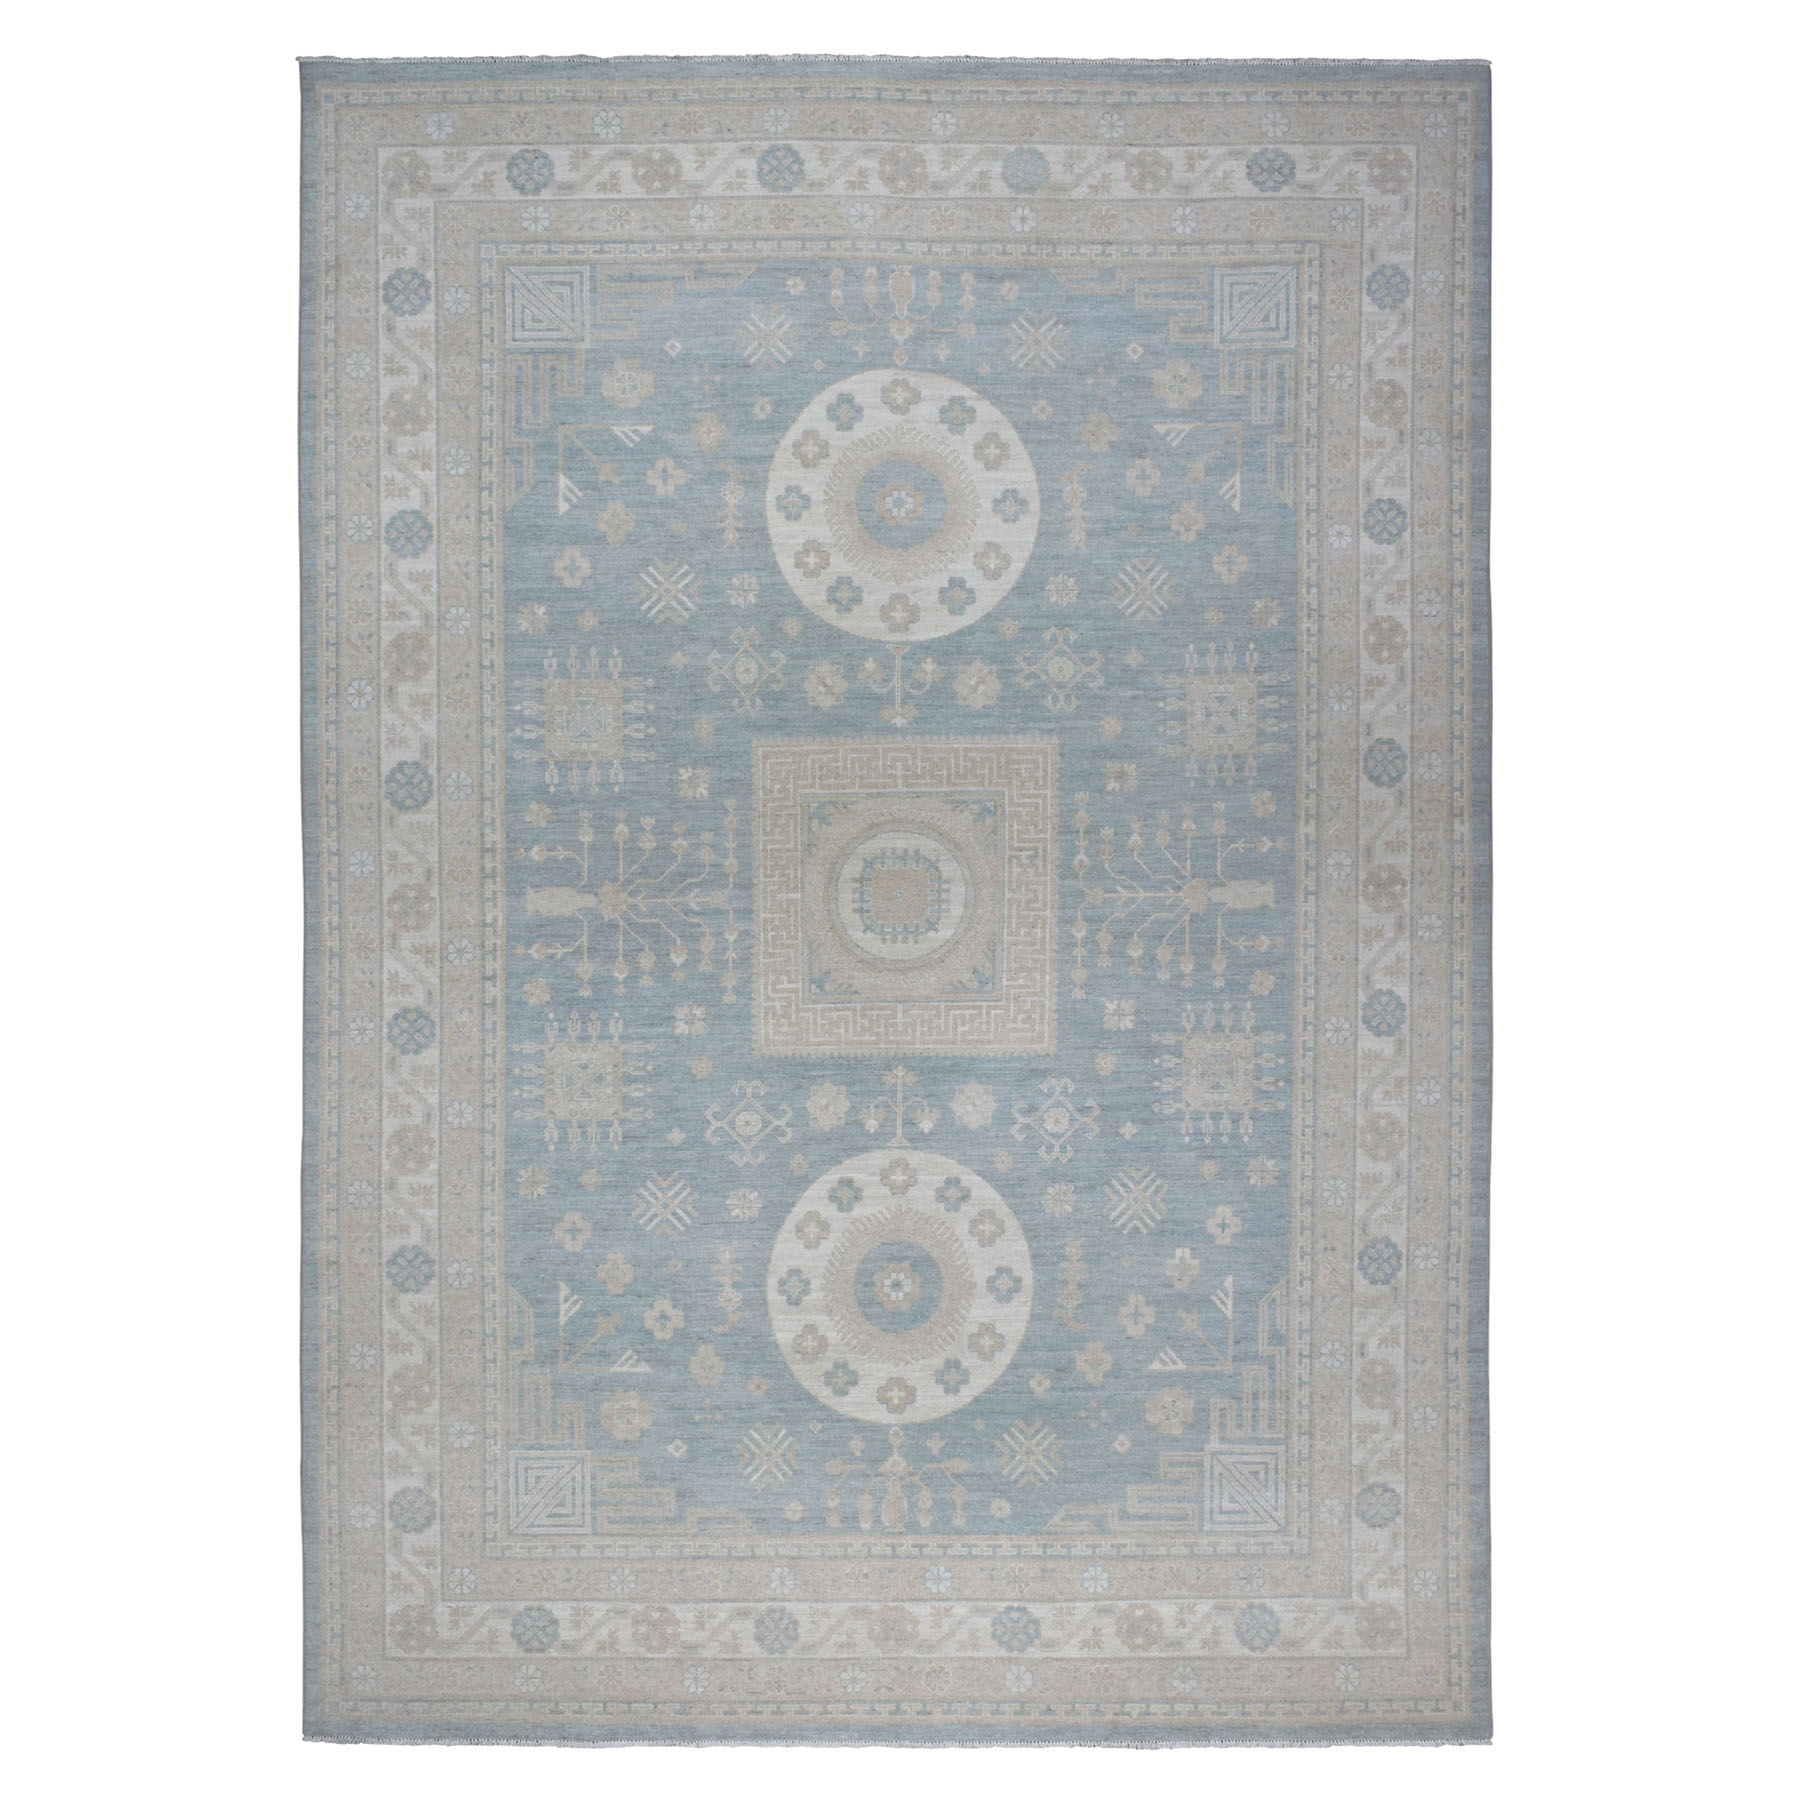 "10'x13'10"" Blue Peshawar with Khotan Design Pure Wool Hand Woven Oriental Rug"